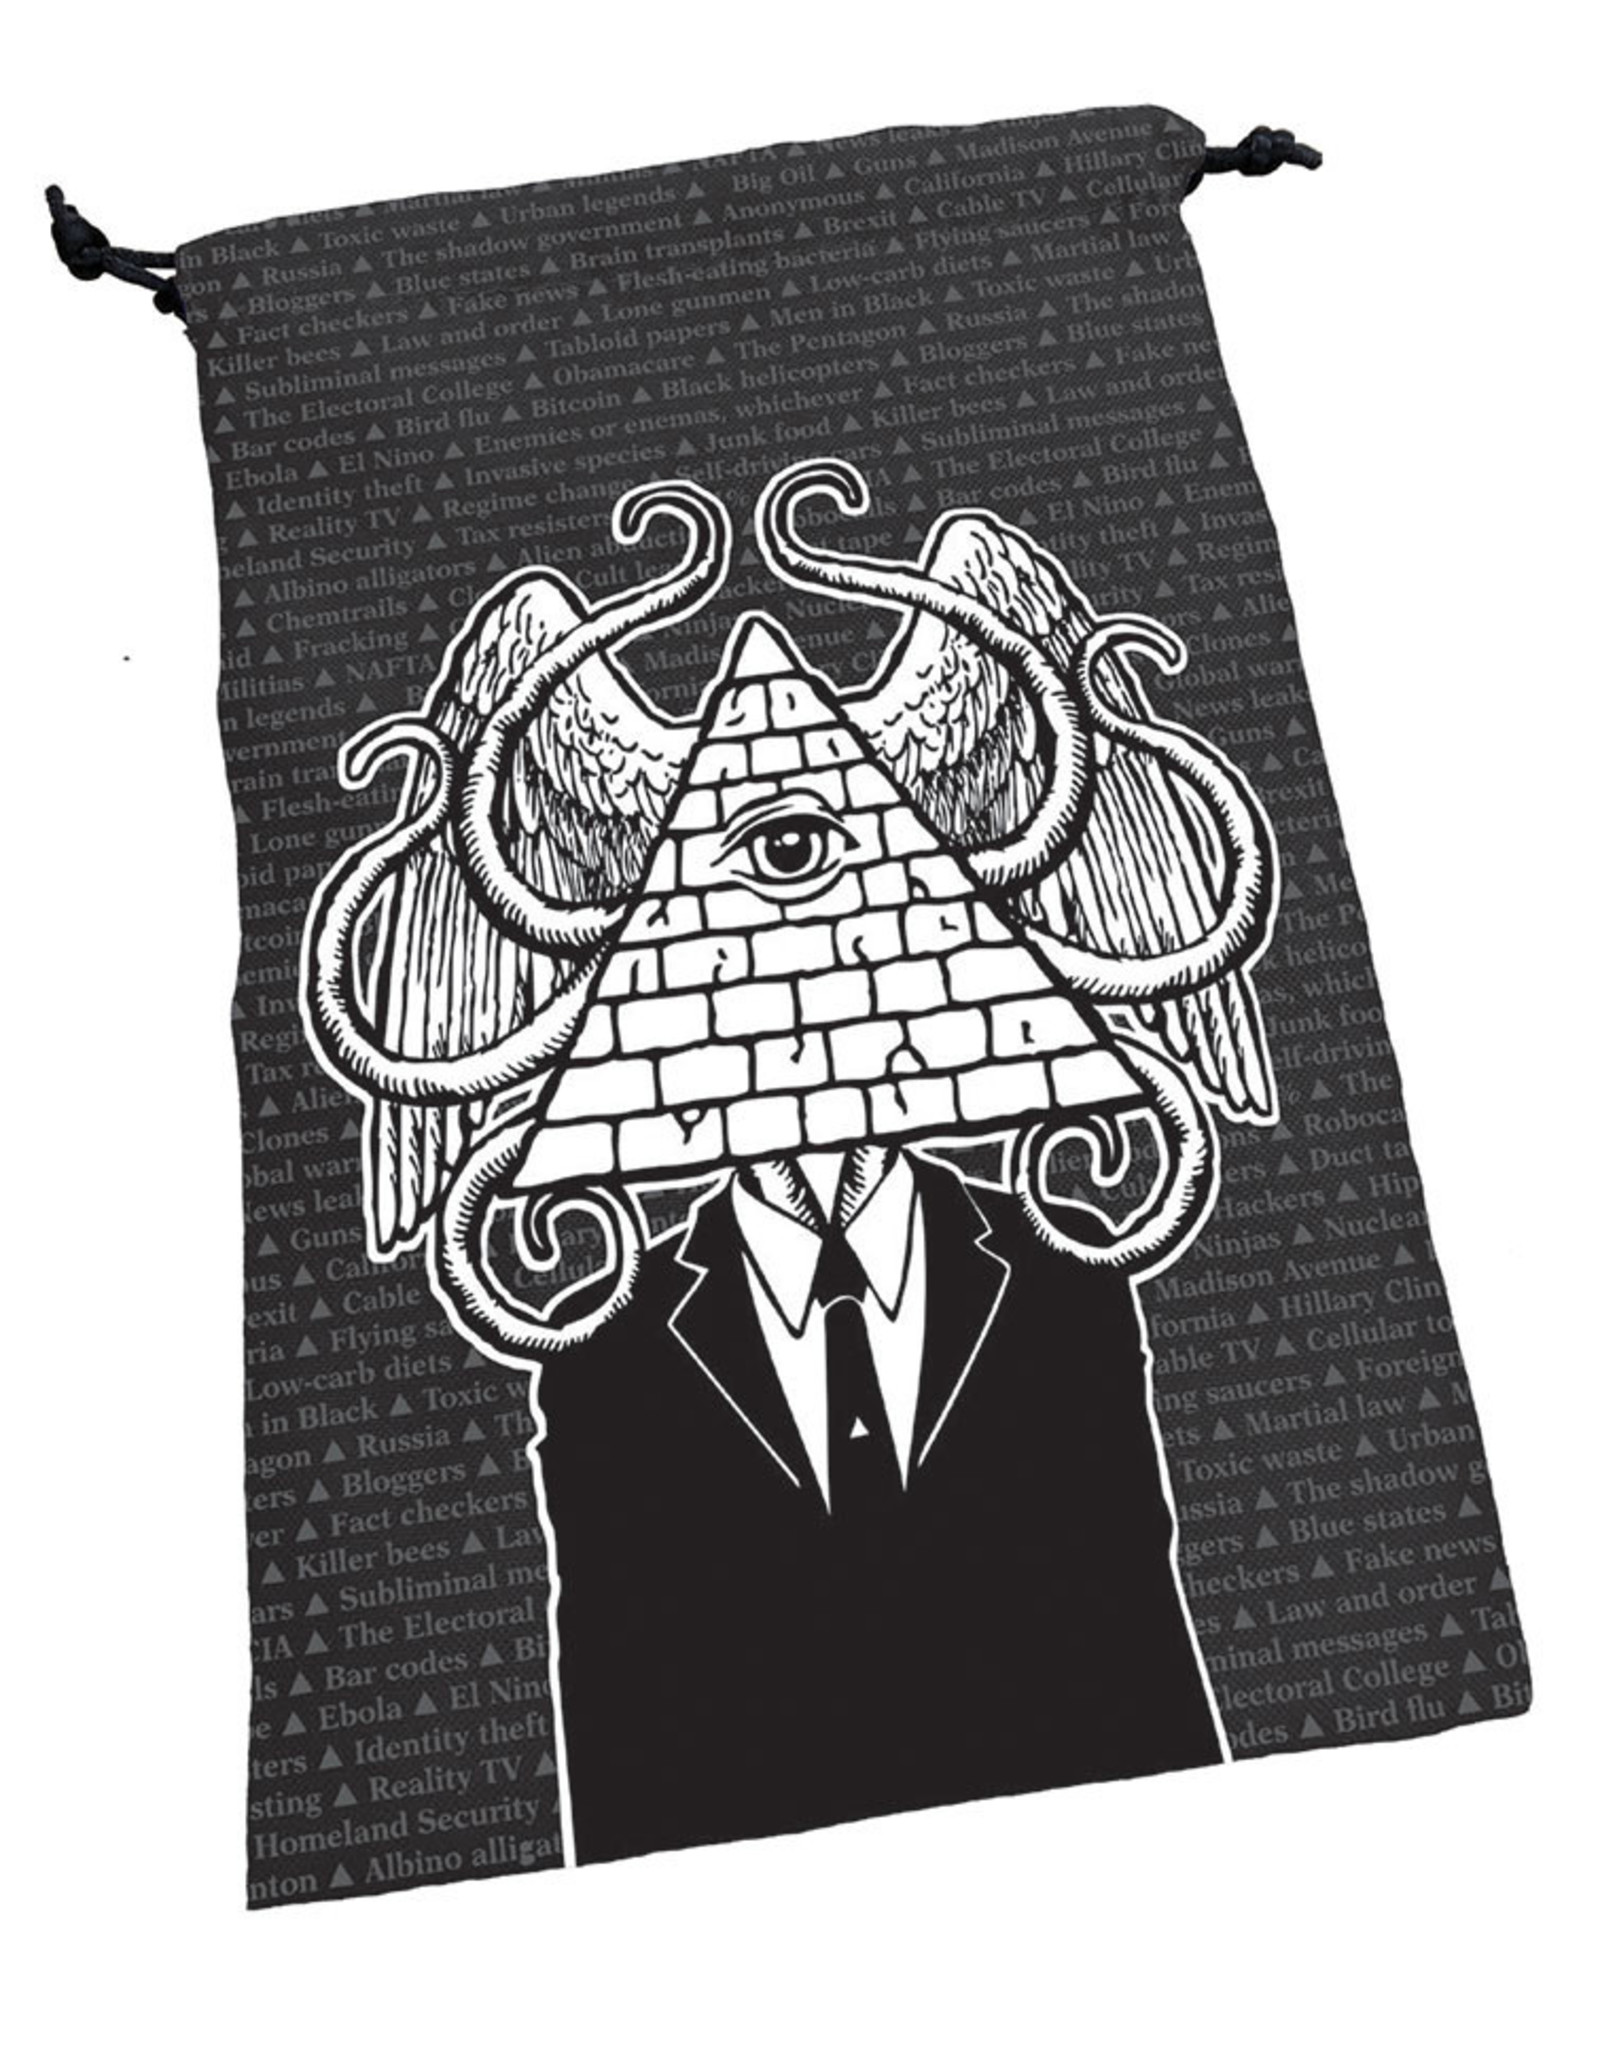 Steve Jackson Games Dice Bag: Illuminati